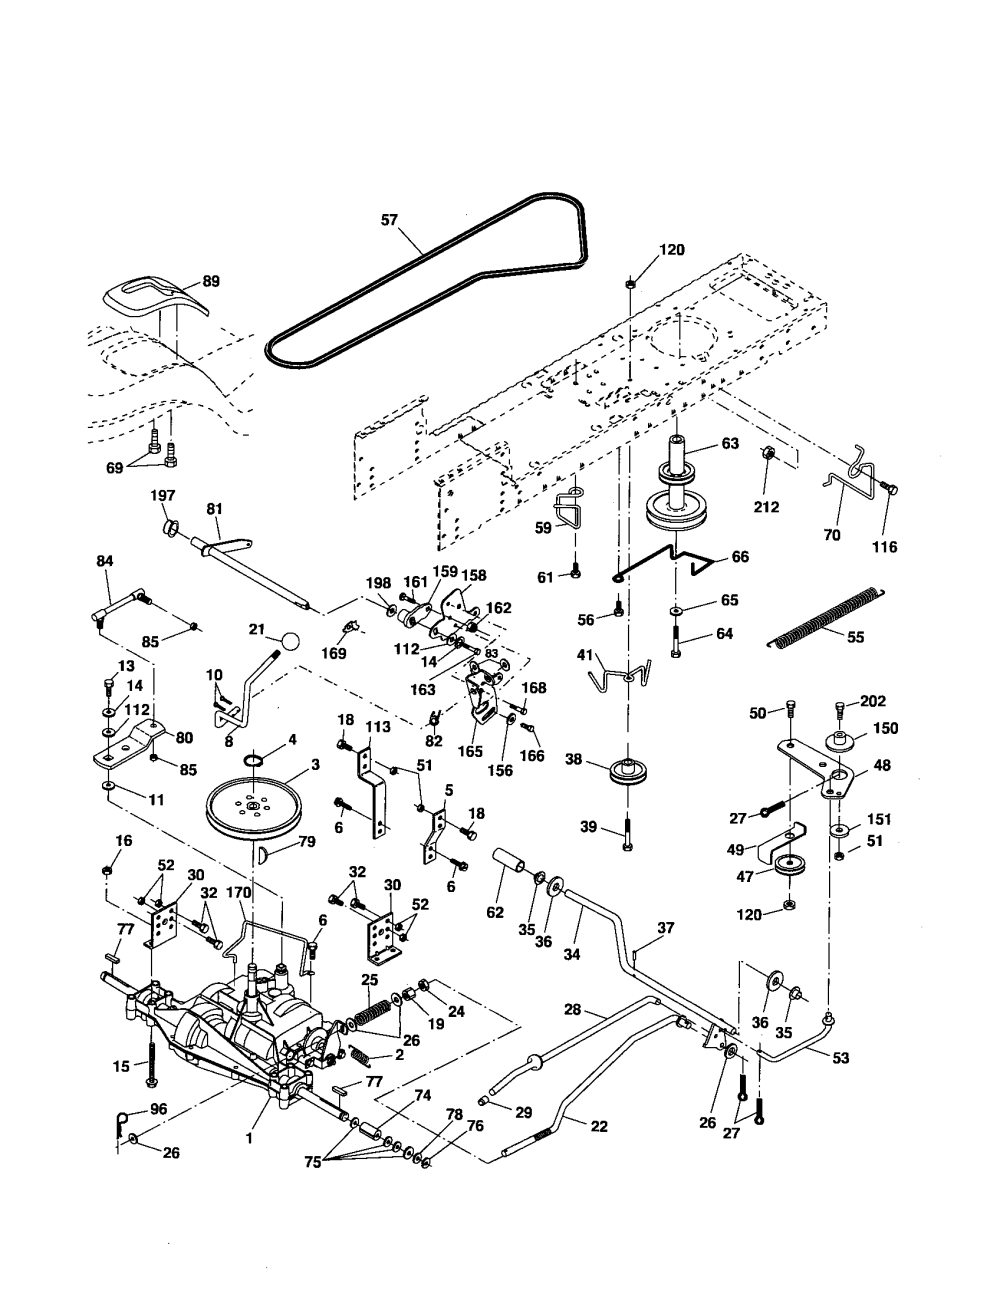 medium resolution of poulan riding mower schematics wiring diagram passlooking for poulan model 96012004401 front engine lawn tractor poulan